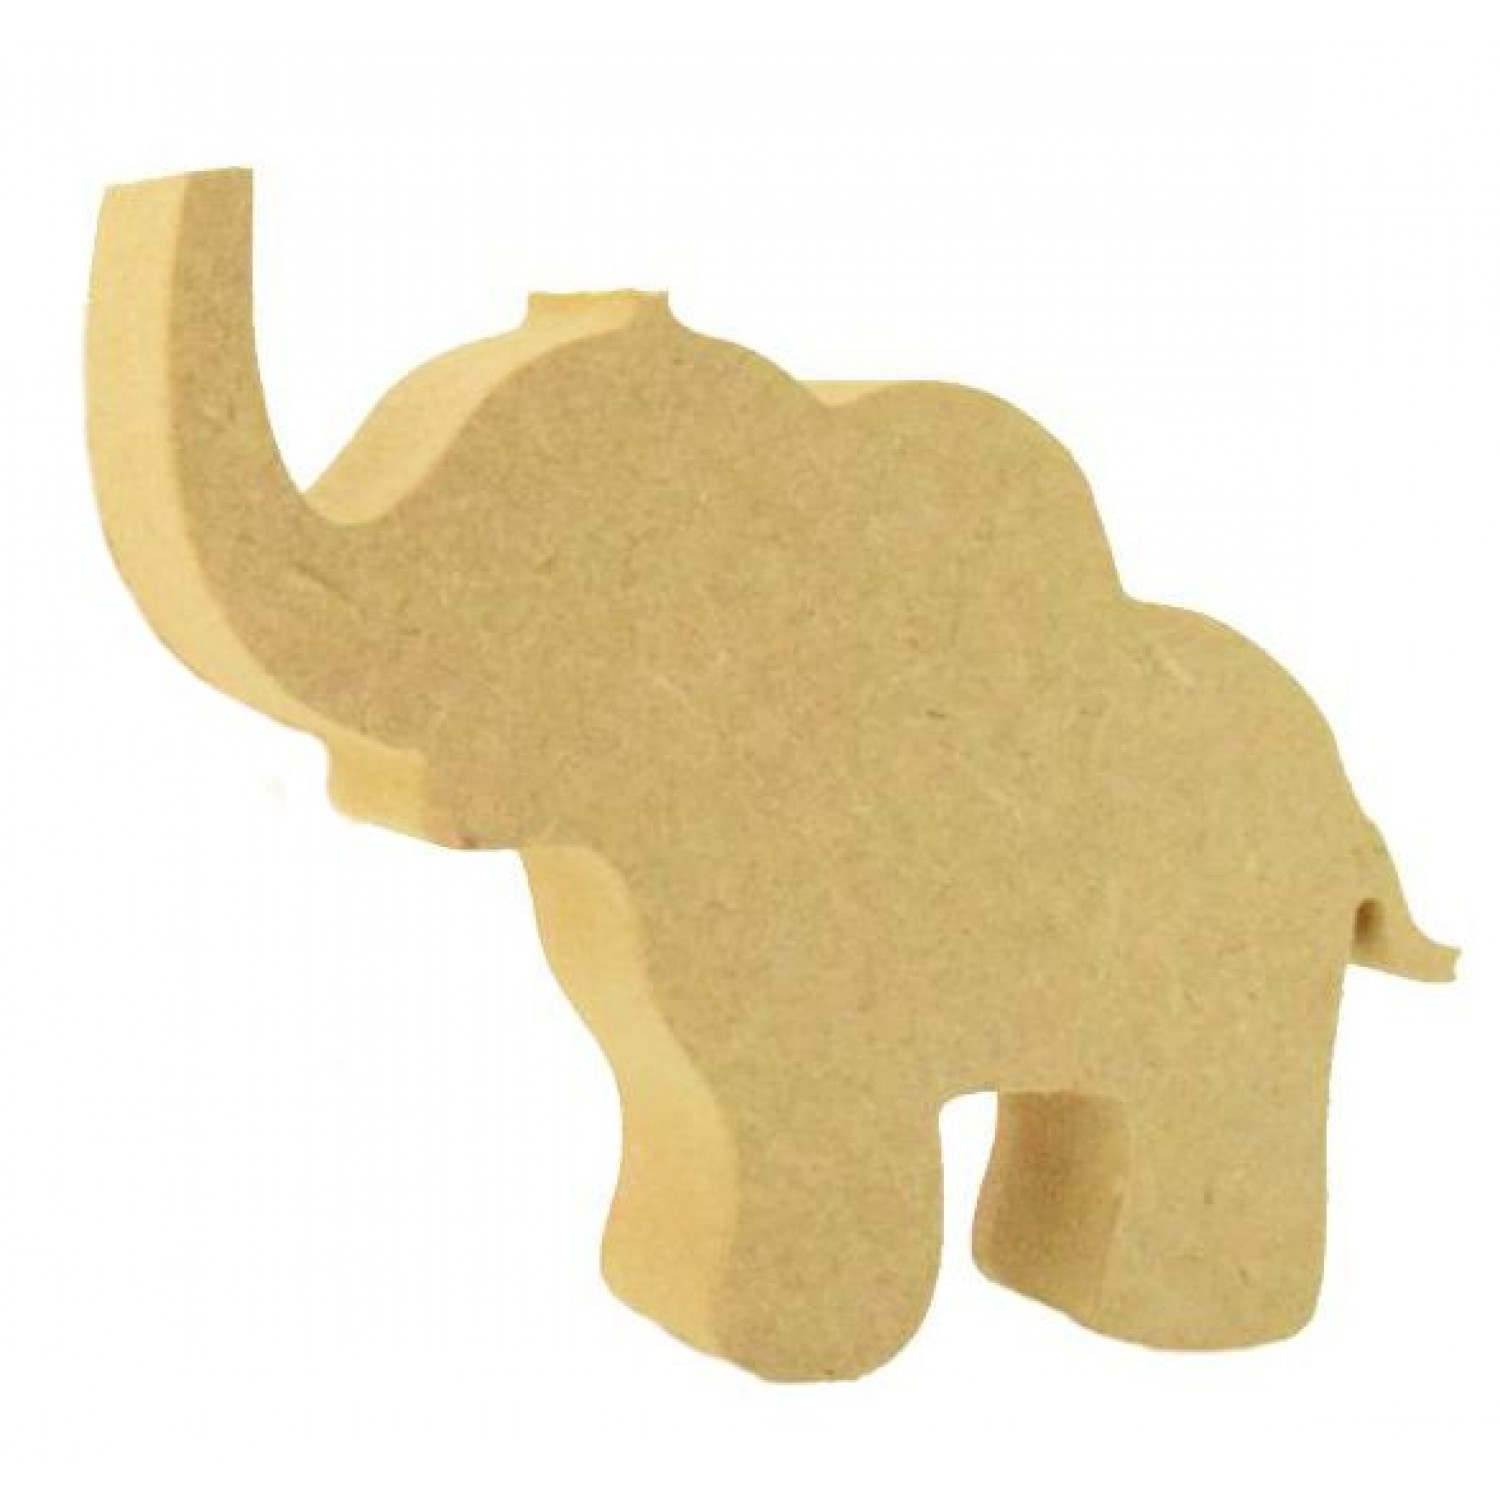 Elephant freestanding  150mm Craft Blank 18mm MDF